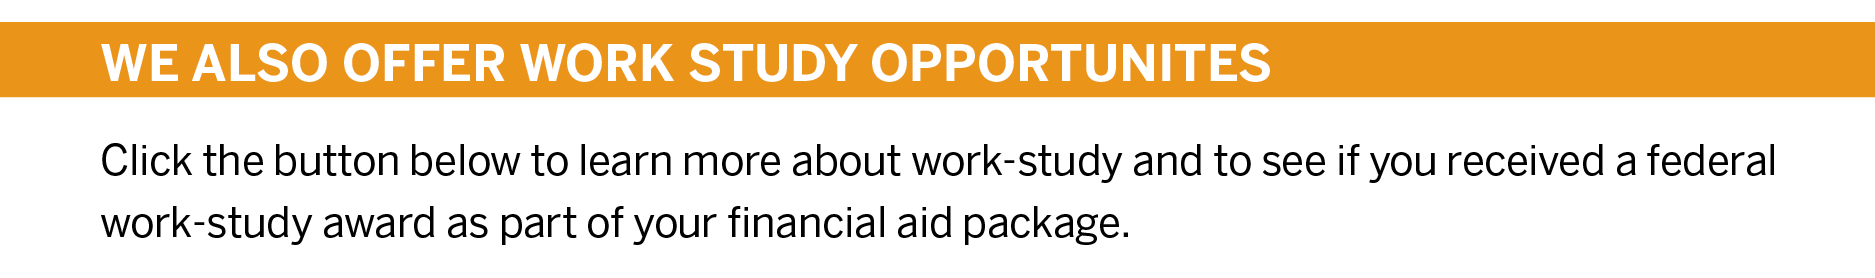 WE ALSO OFFER WORK STUDY OPPORTUNITES Click the button below to learn more about work-study and to see if you received a federal work-study award as part of your financial aid package.